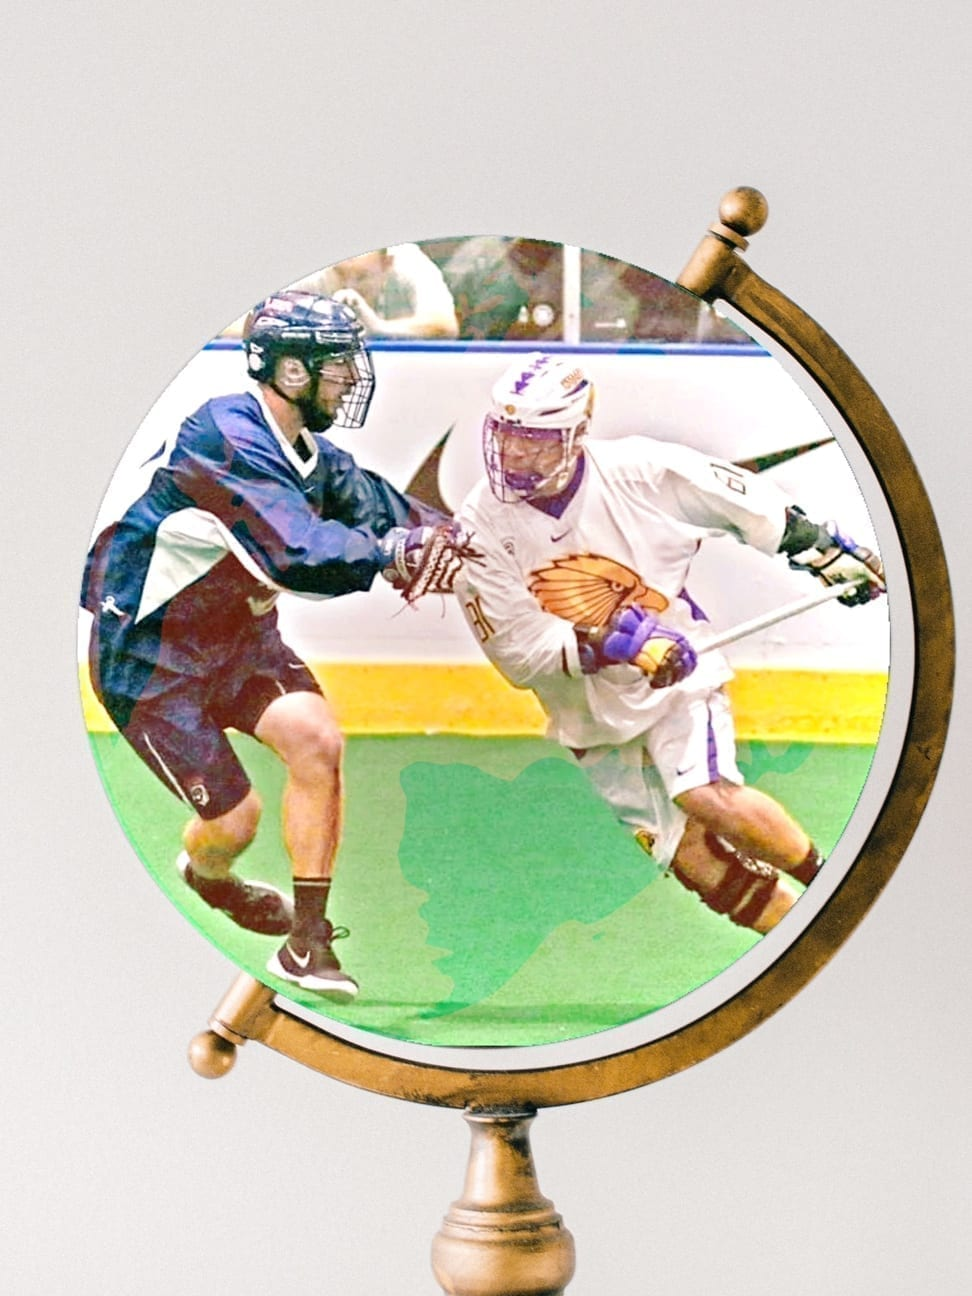 Test your knowledge of the international box game with this World Indoor Lacrosse Championship quiz, covering the global indoor lax event.